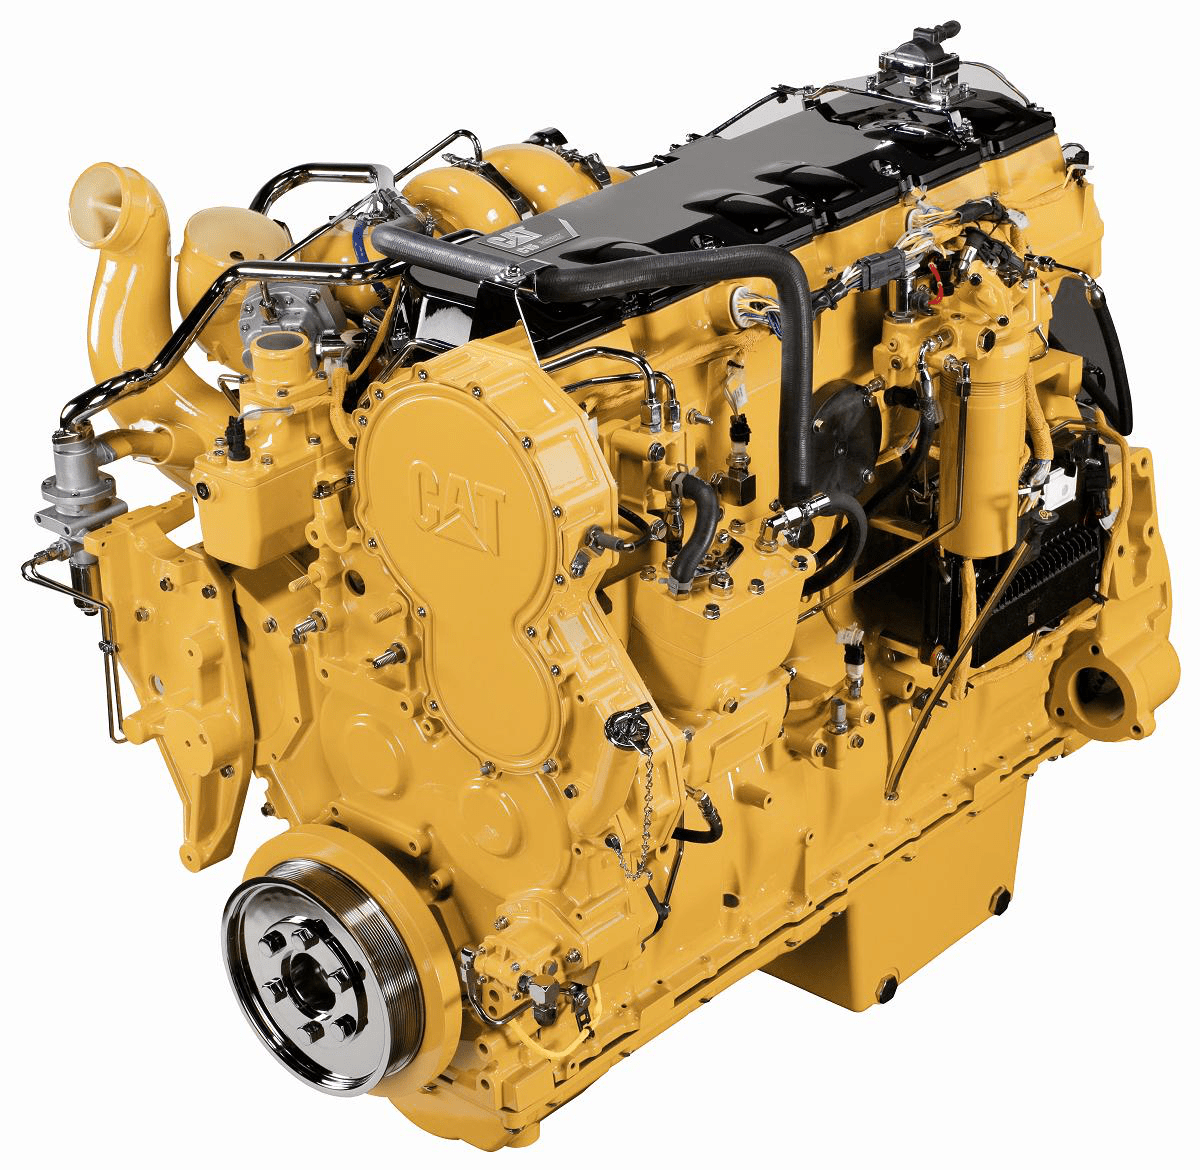 hight resolution of lawsuits mount against cat s acert engines court